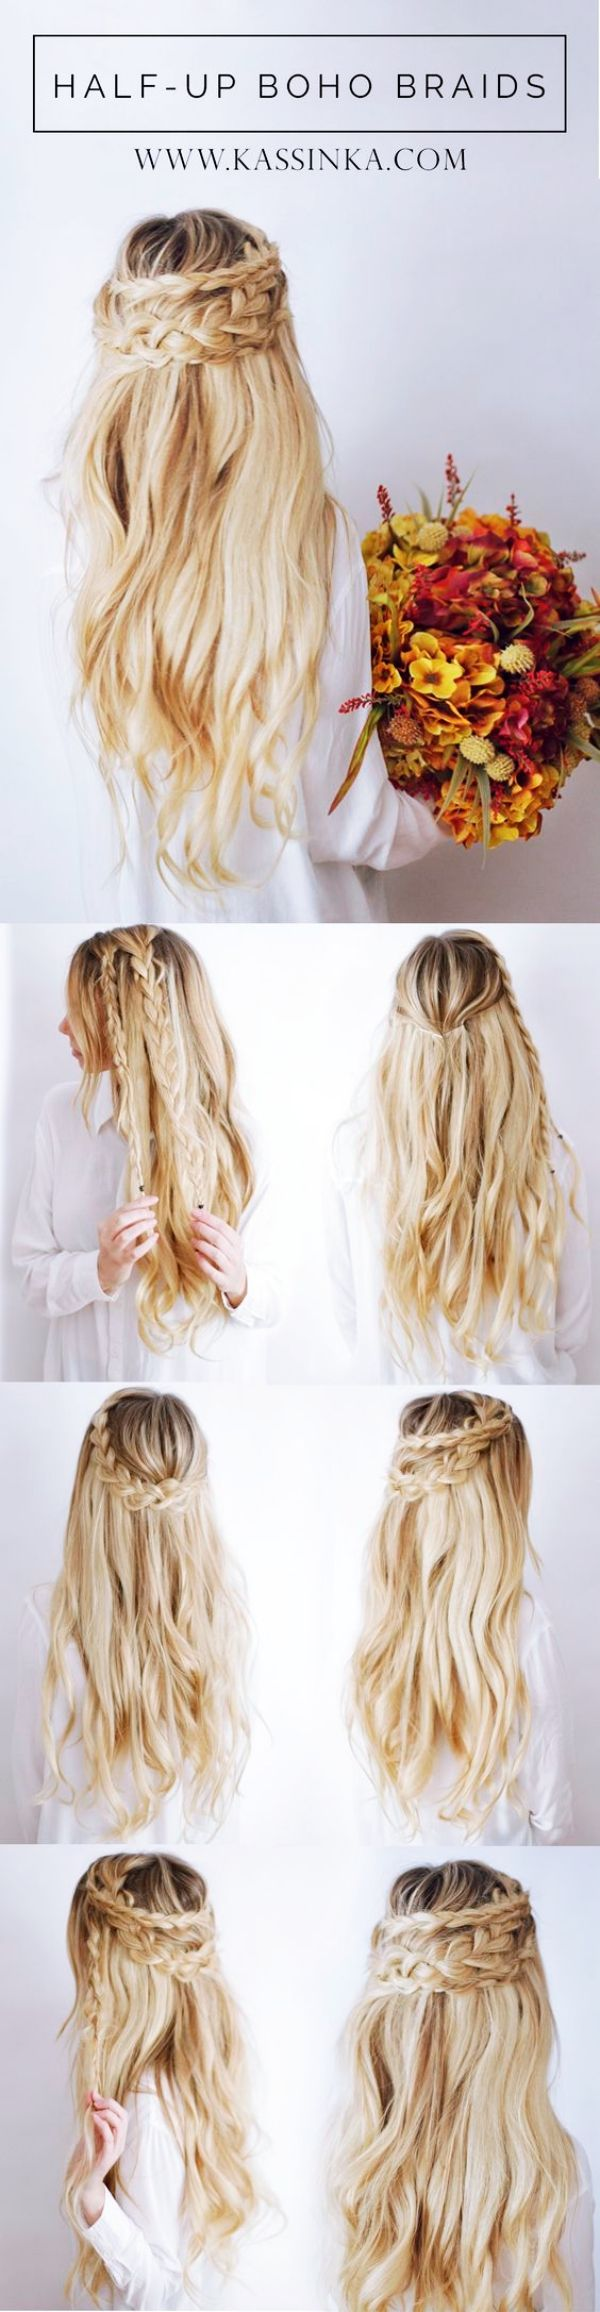 40 Gorgeous Wedding Hairstyles For Long Hair | Weddings, Hair style ...